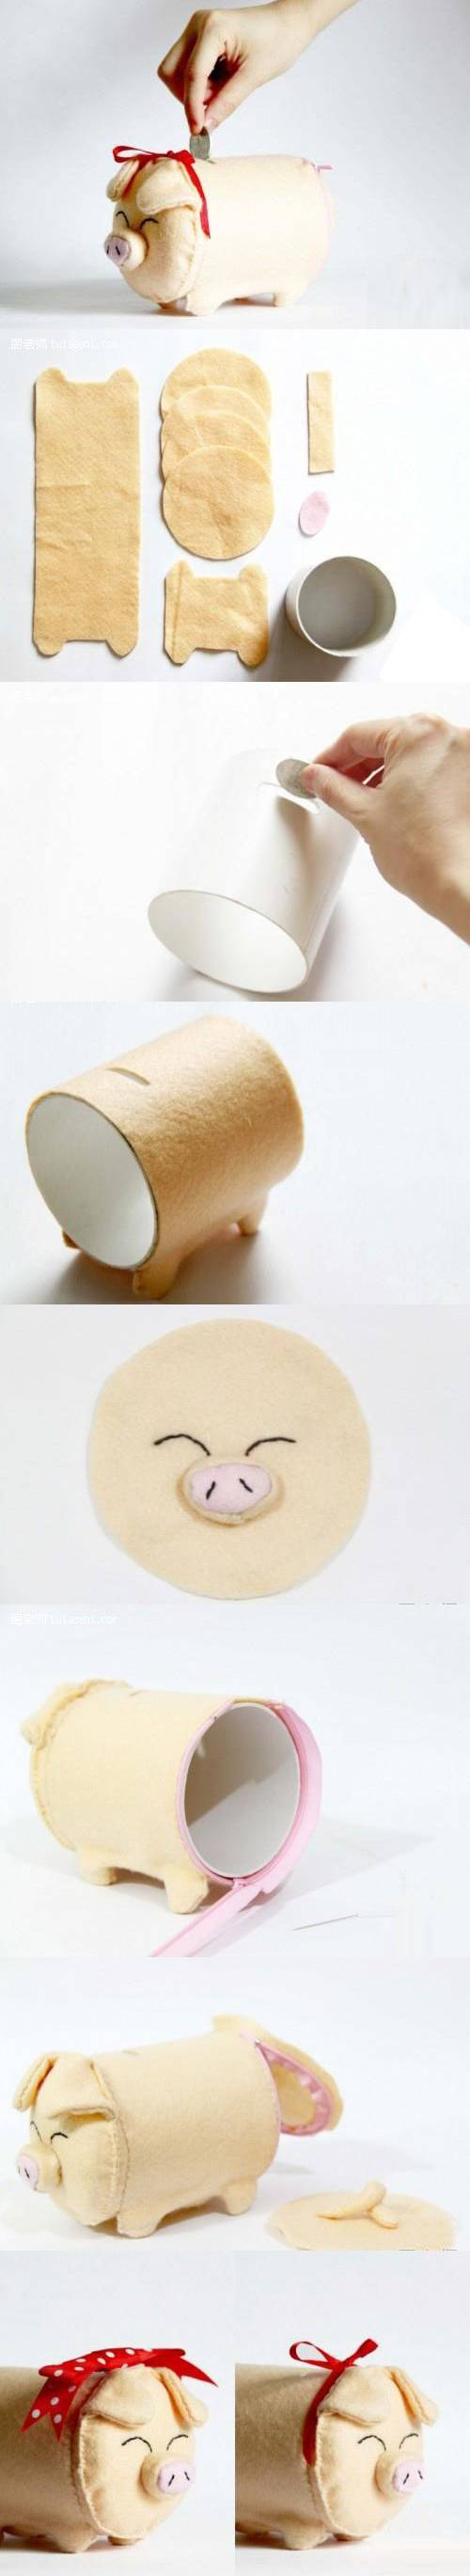 plush-piggy-bank